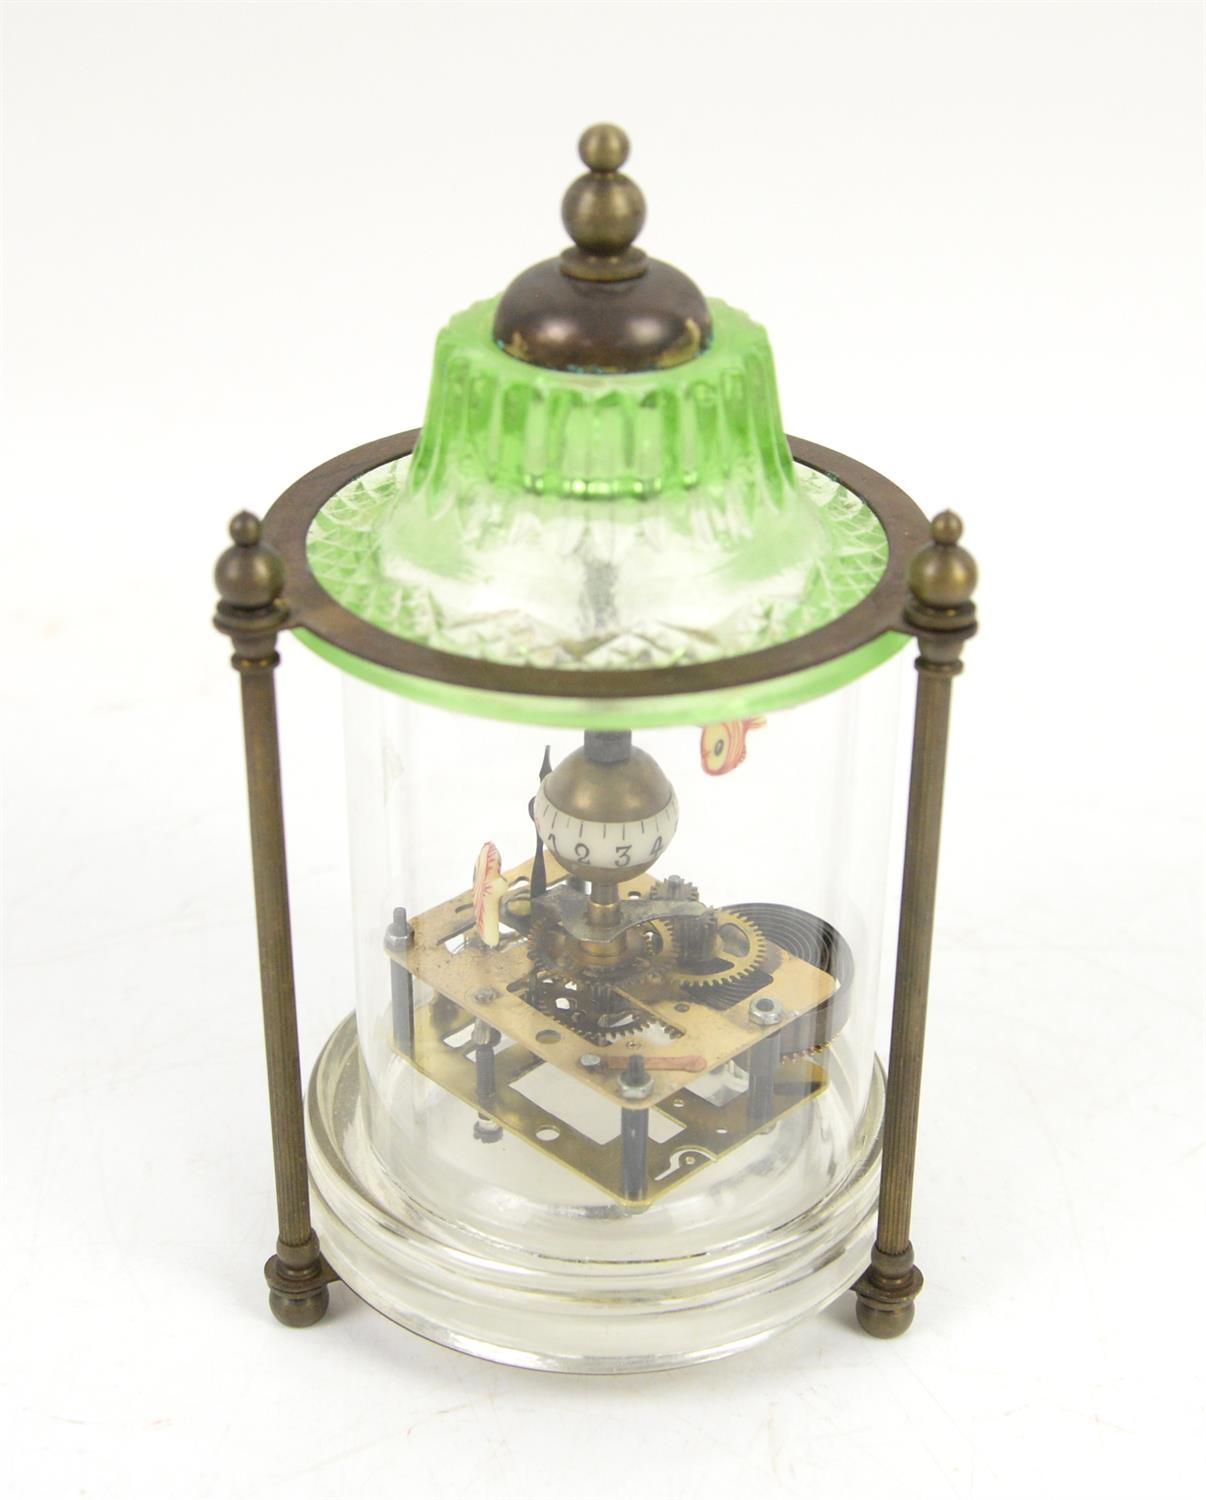 Chinese style automaton clock in glass cylindrical case with pagoda top, three reeded column - Image 2 of 2